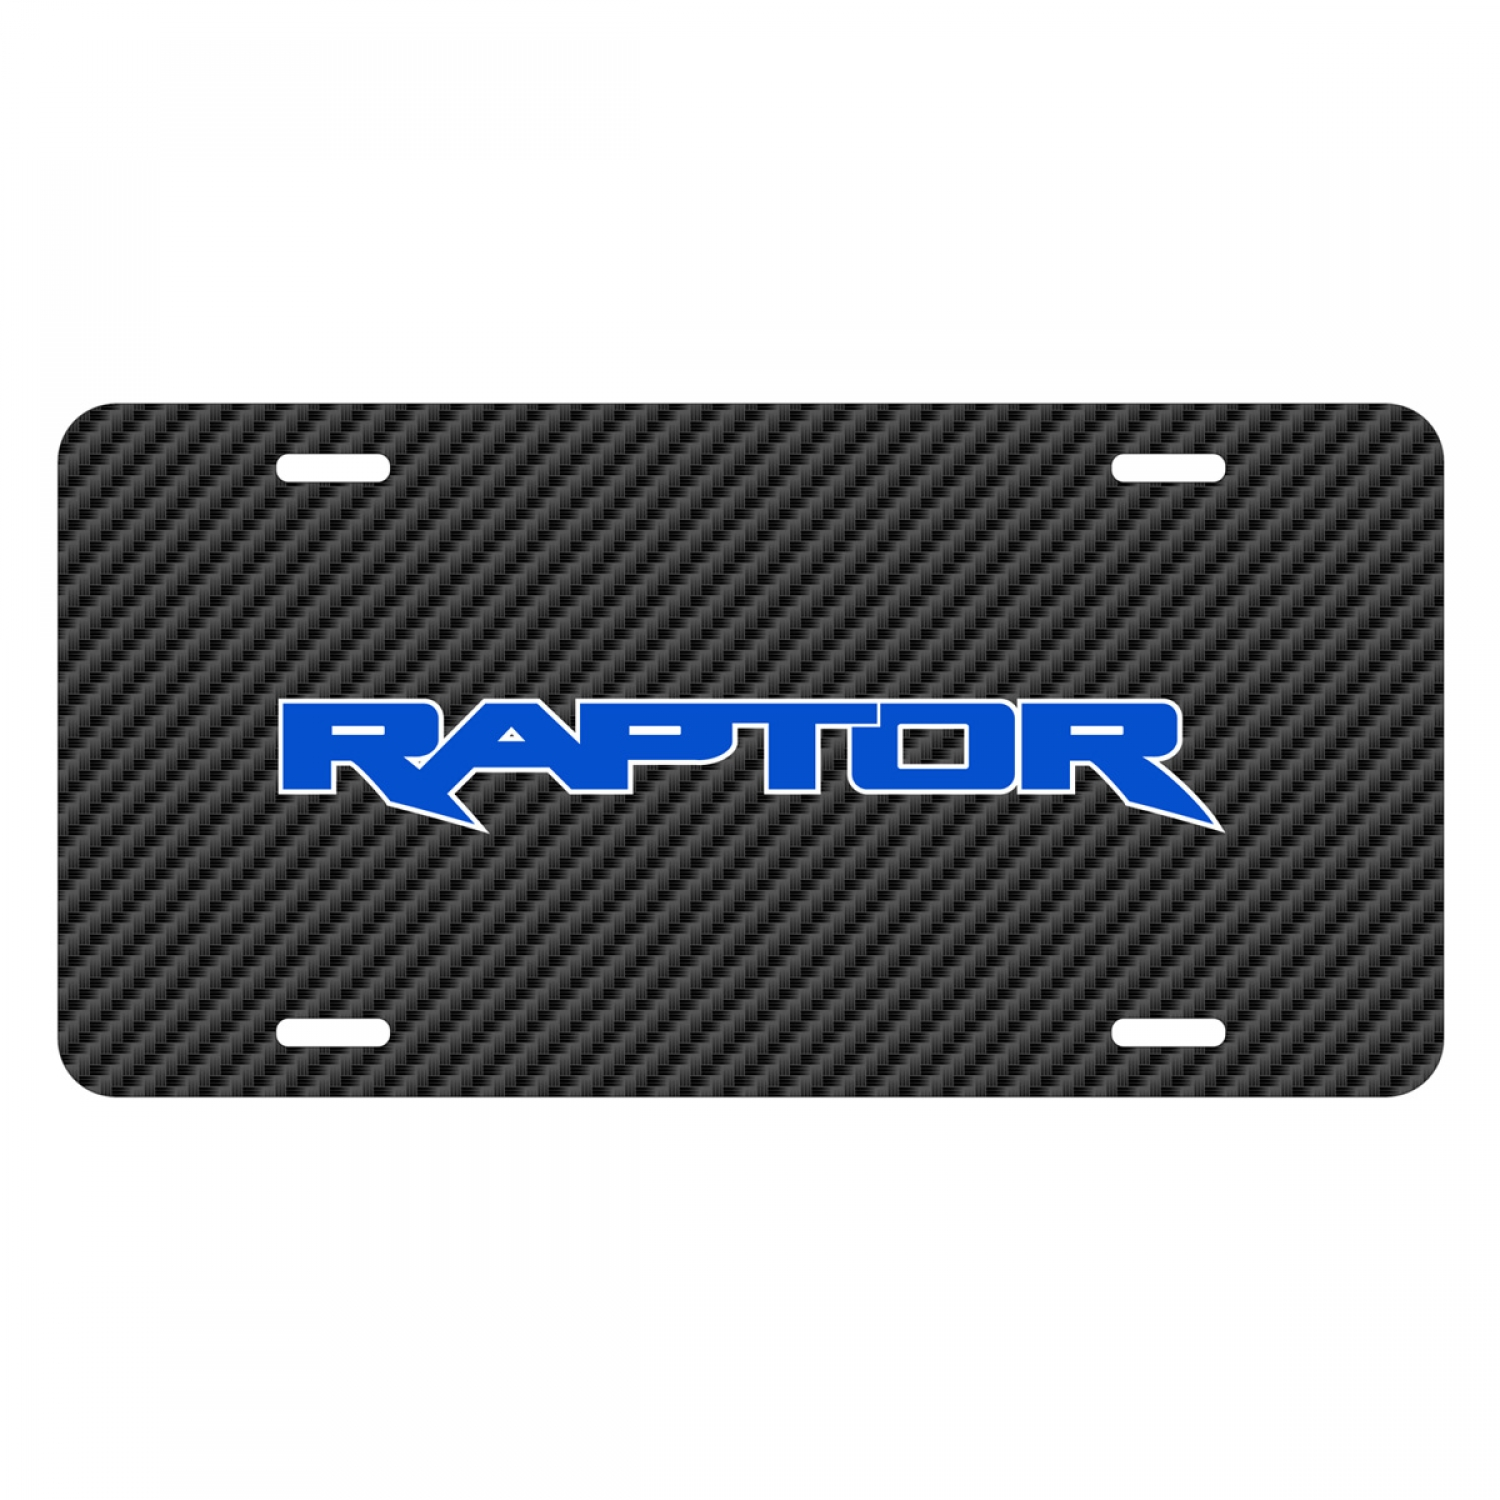 Ford F-150 Raptor 2017 in Blue Black Carbon Fiber Texture Graphic UV Metal License Plate